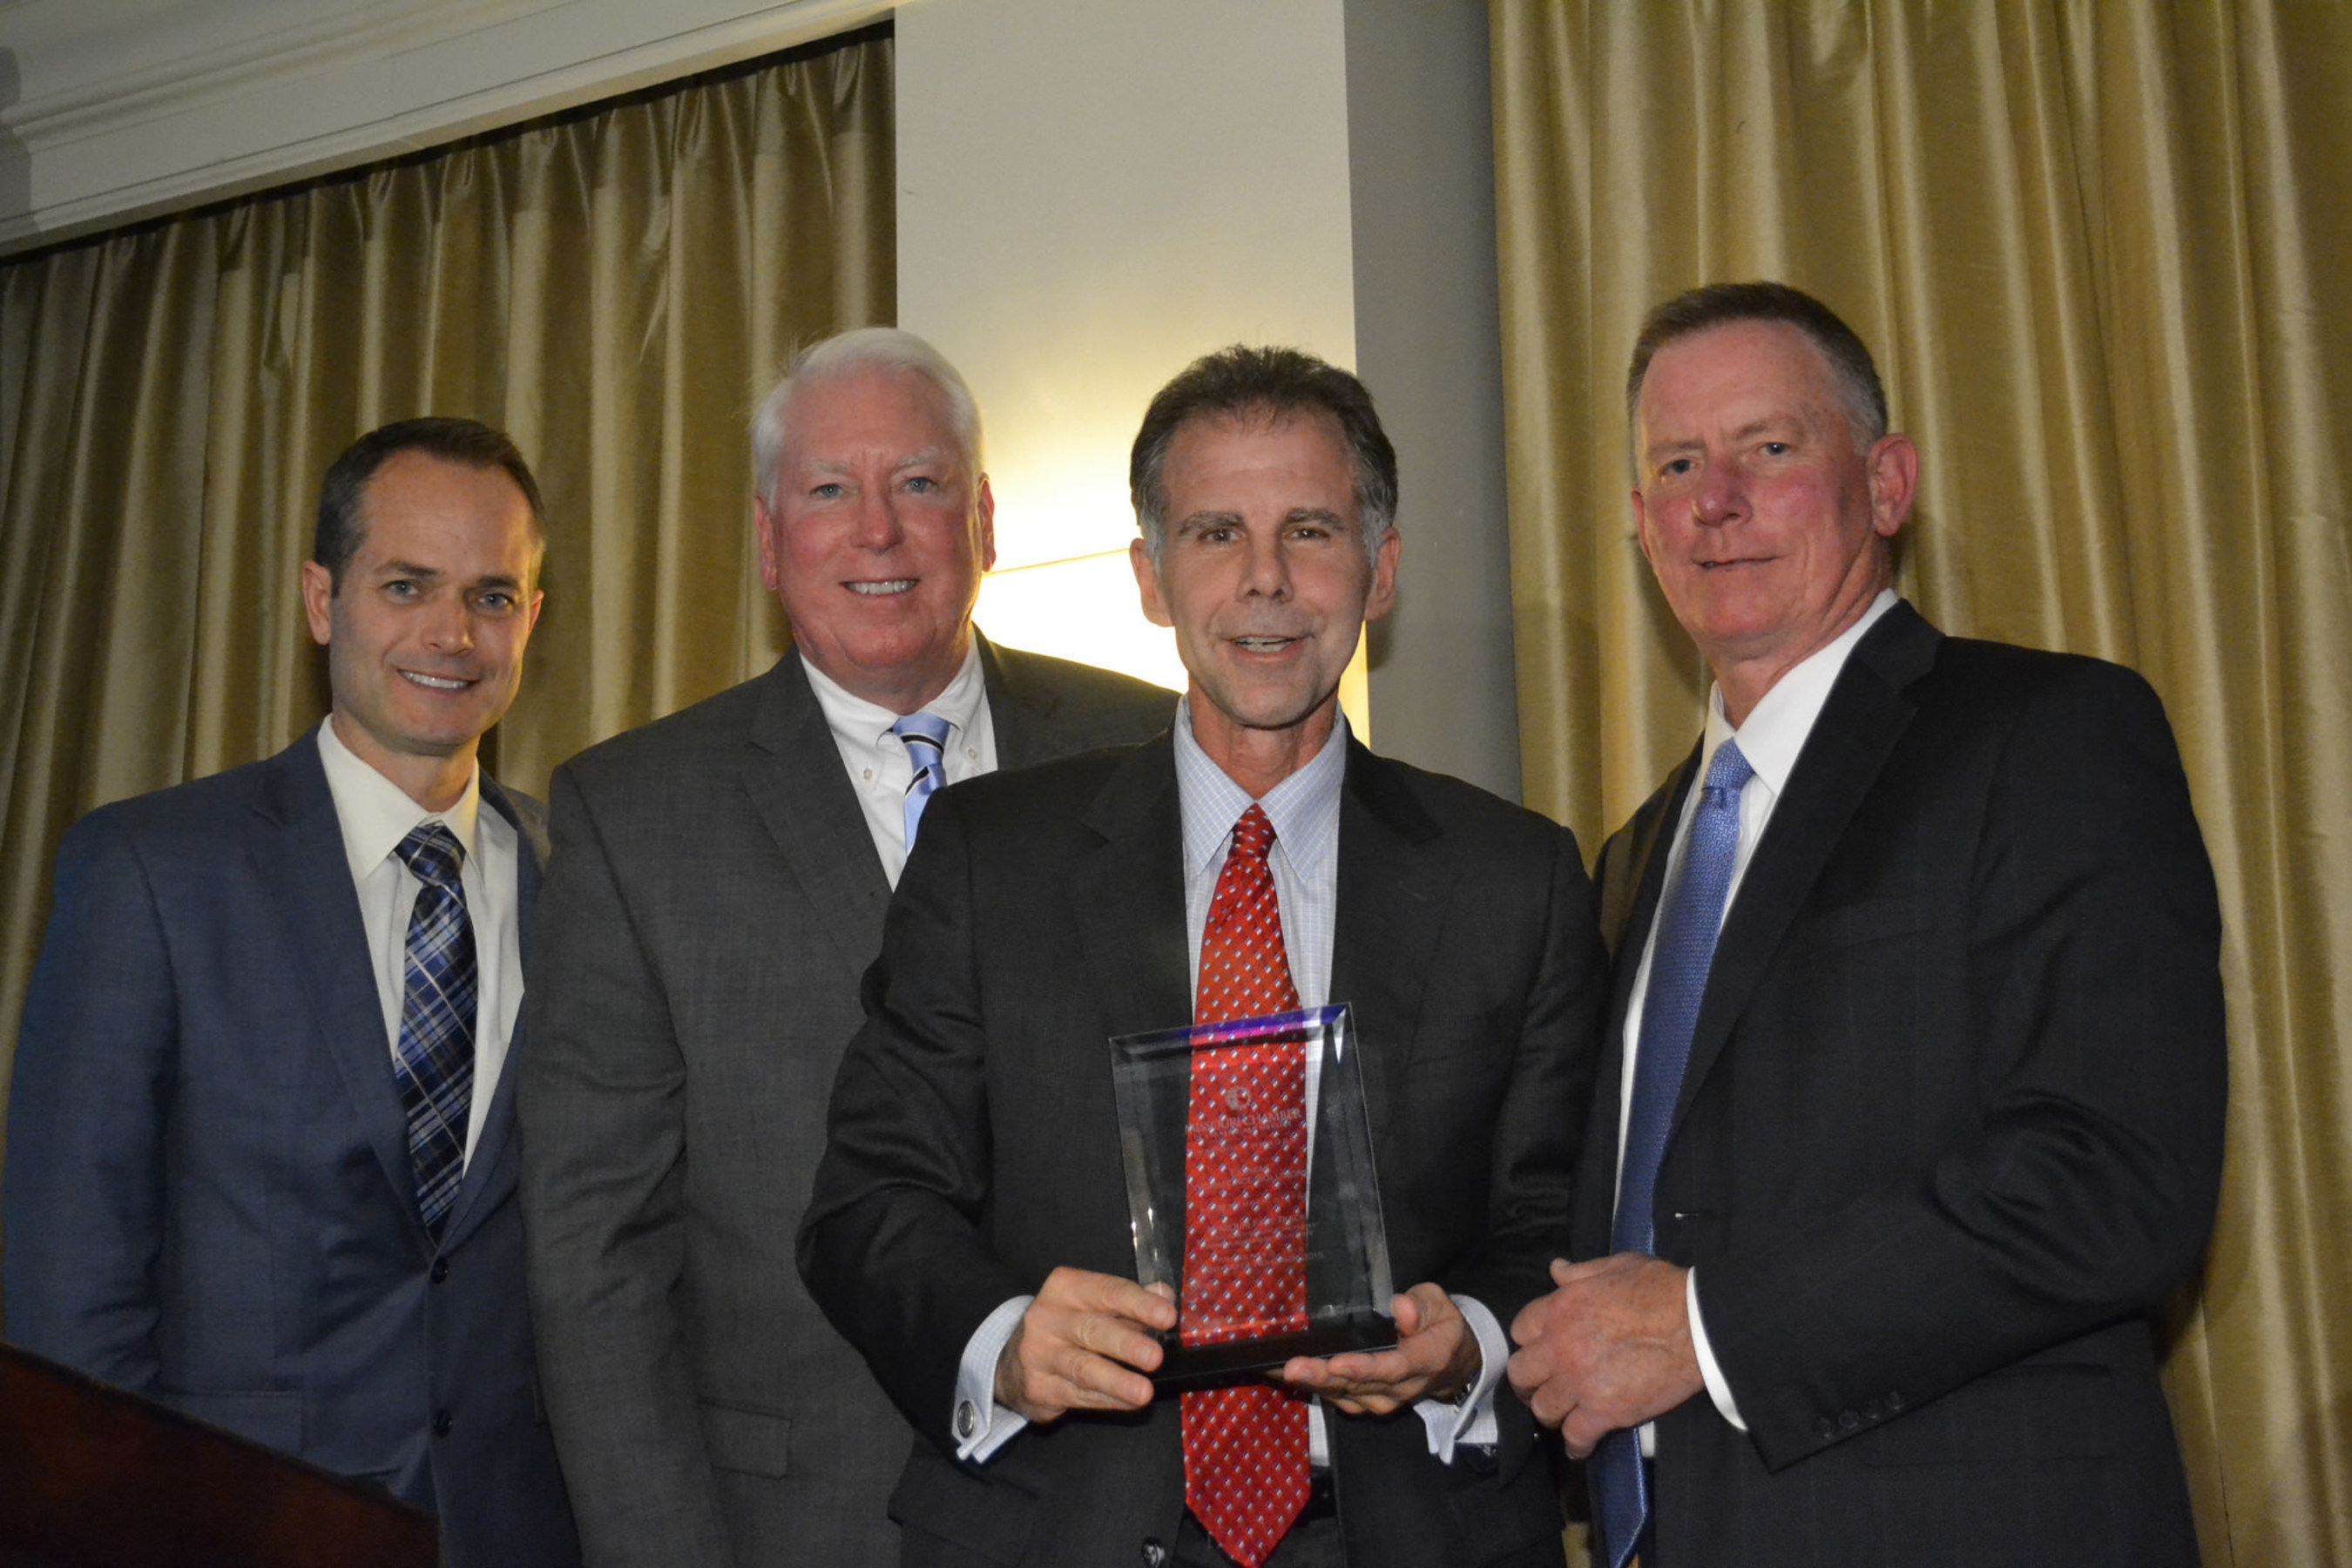 President Dann Adams accepts the 2015 Fast Track Award on behalf of Equifax Workforce Solutions.